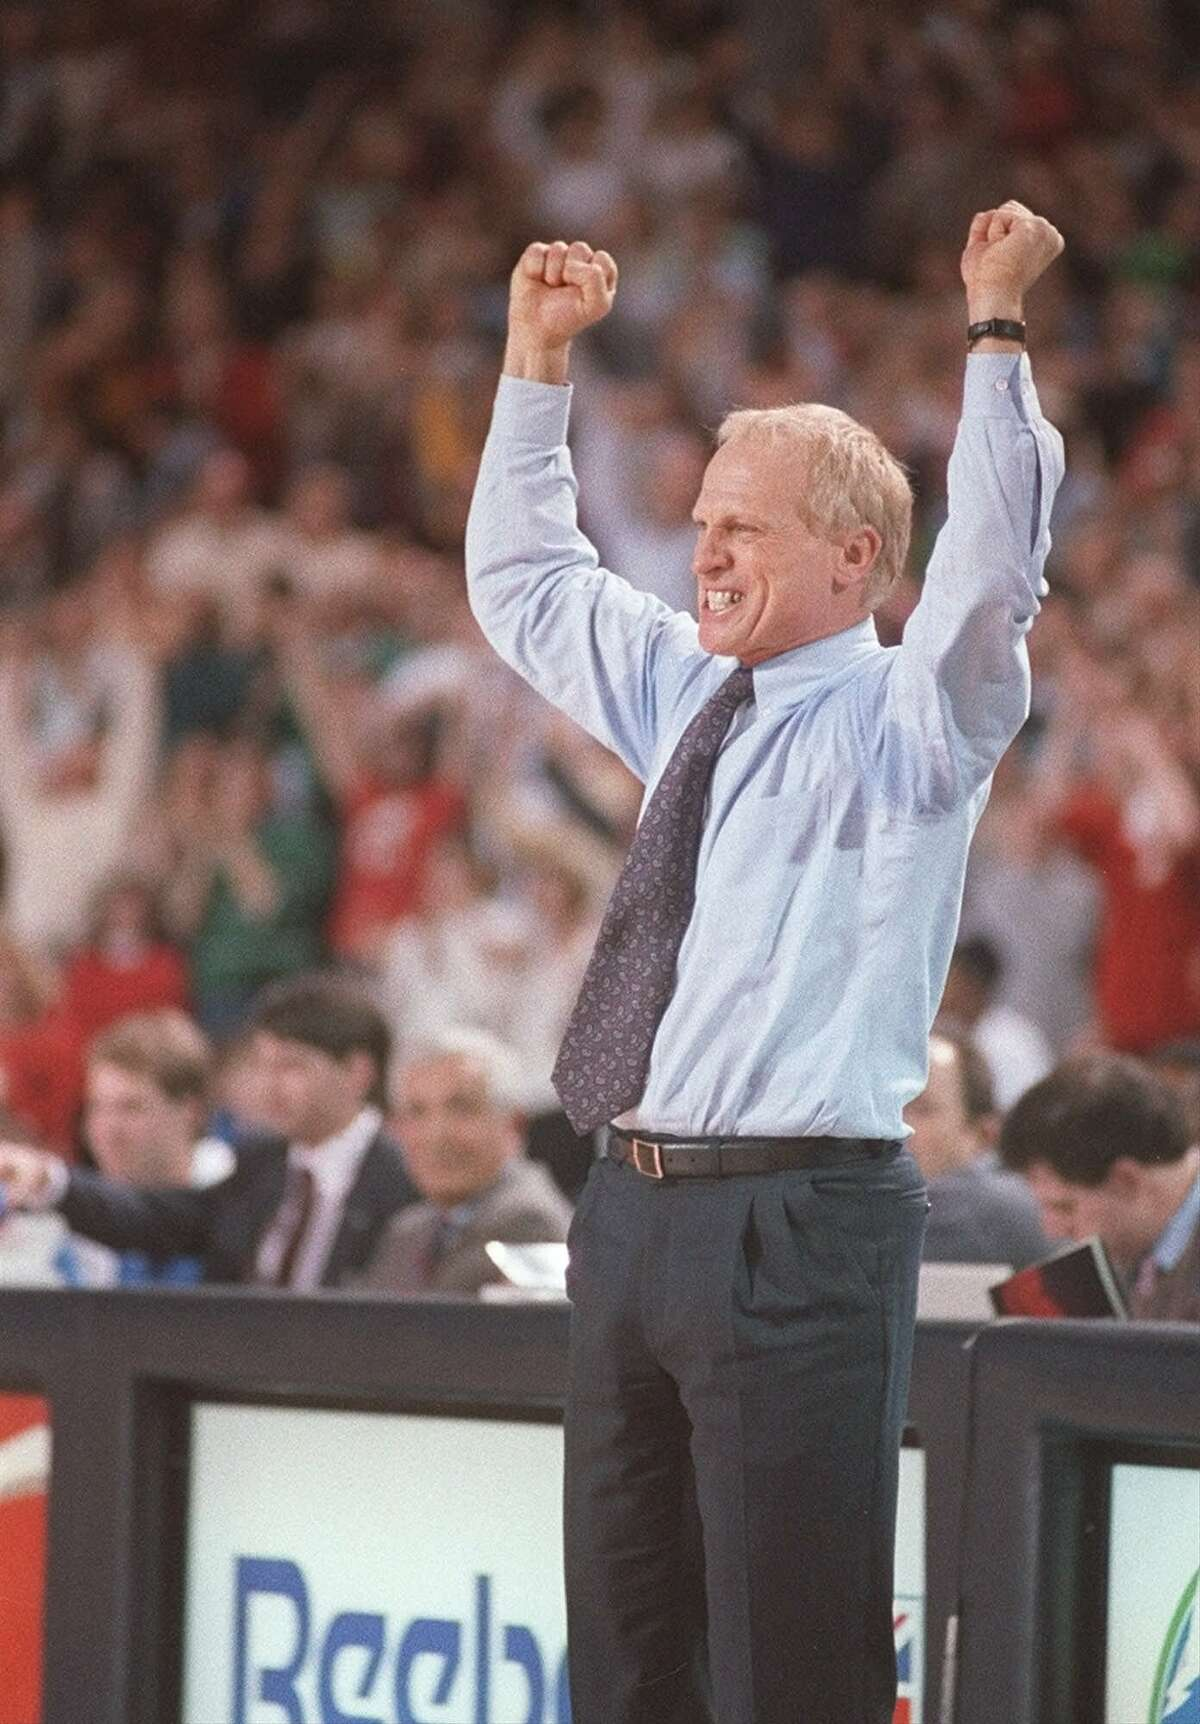 FILE--Bill Musselman cheers as he watches his Minnesota Timberwolves go on to beat the Philadelphia 76ers,125-118, in overtime in November 1989. Musselman, whose competitive spirit helped boost basketball interest and the drive for a professional team in Minnesota, died early Friday morning, May 5, 2000, from cancer related complications. He was 59. (AP Photo/St. Paul Pioneer Press, Scott Takushi, File)